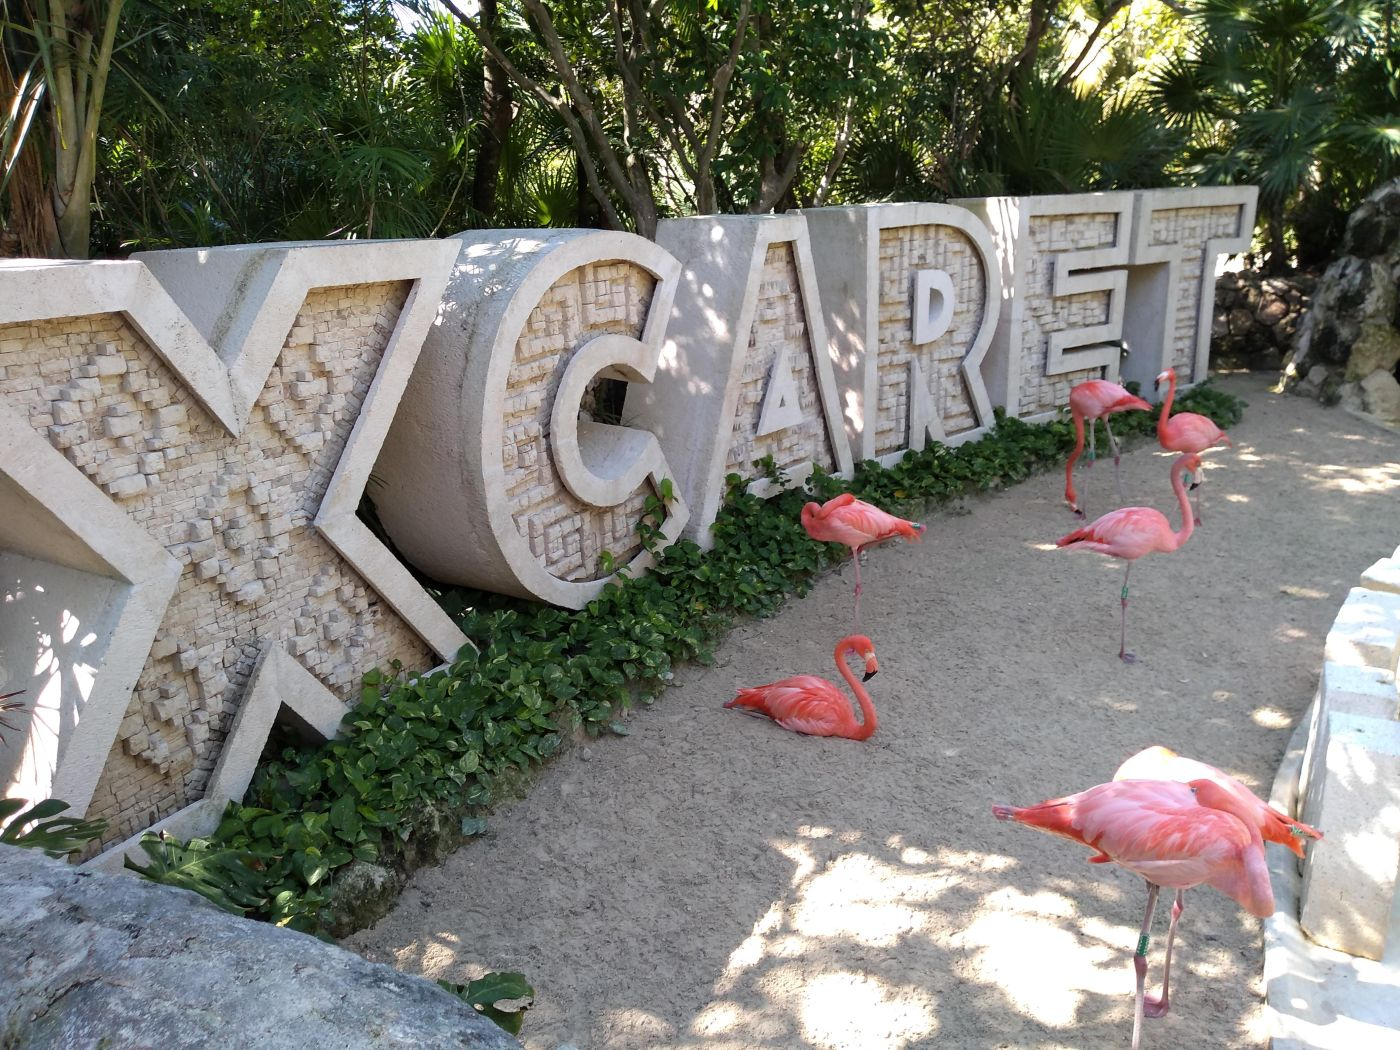 Flamingos at Xcaret Park